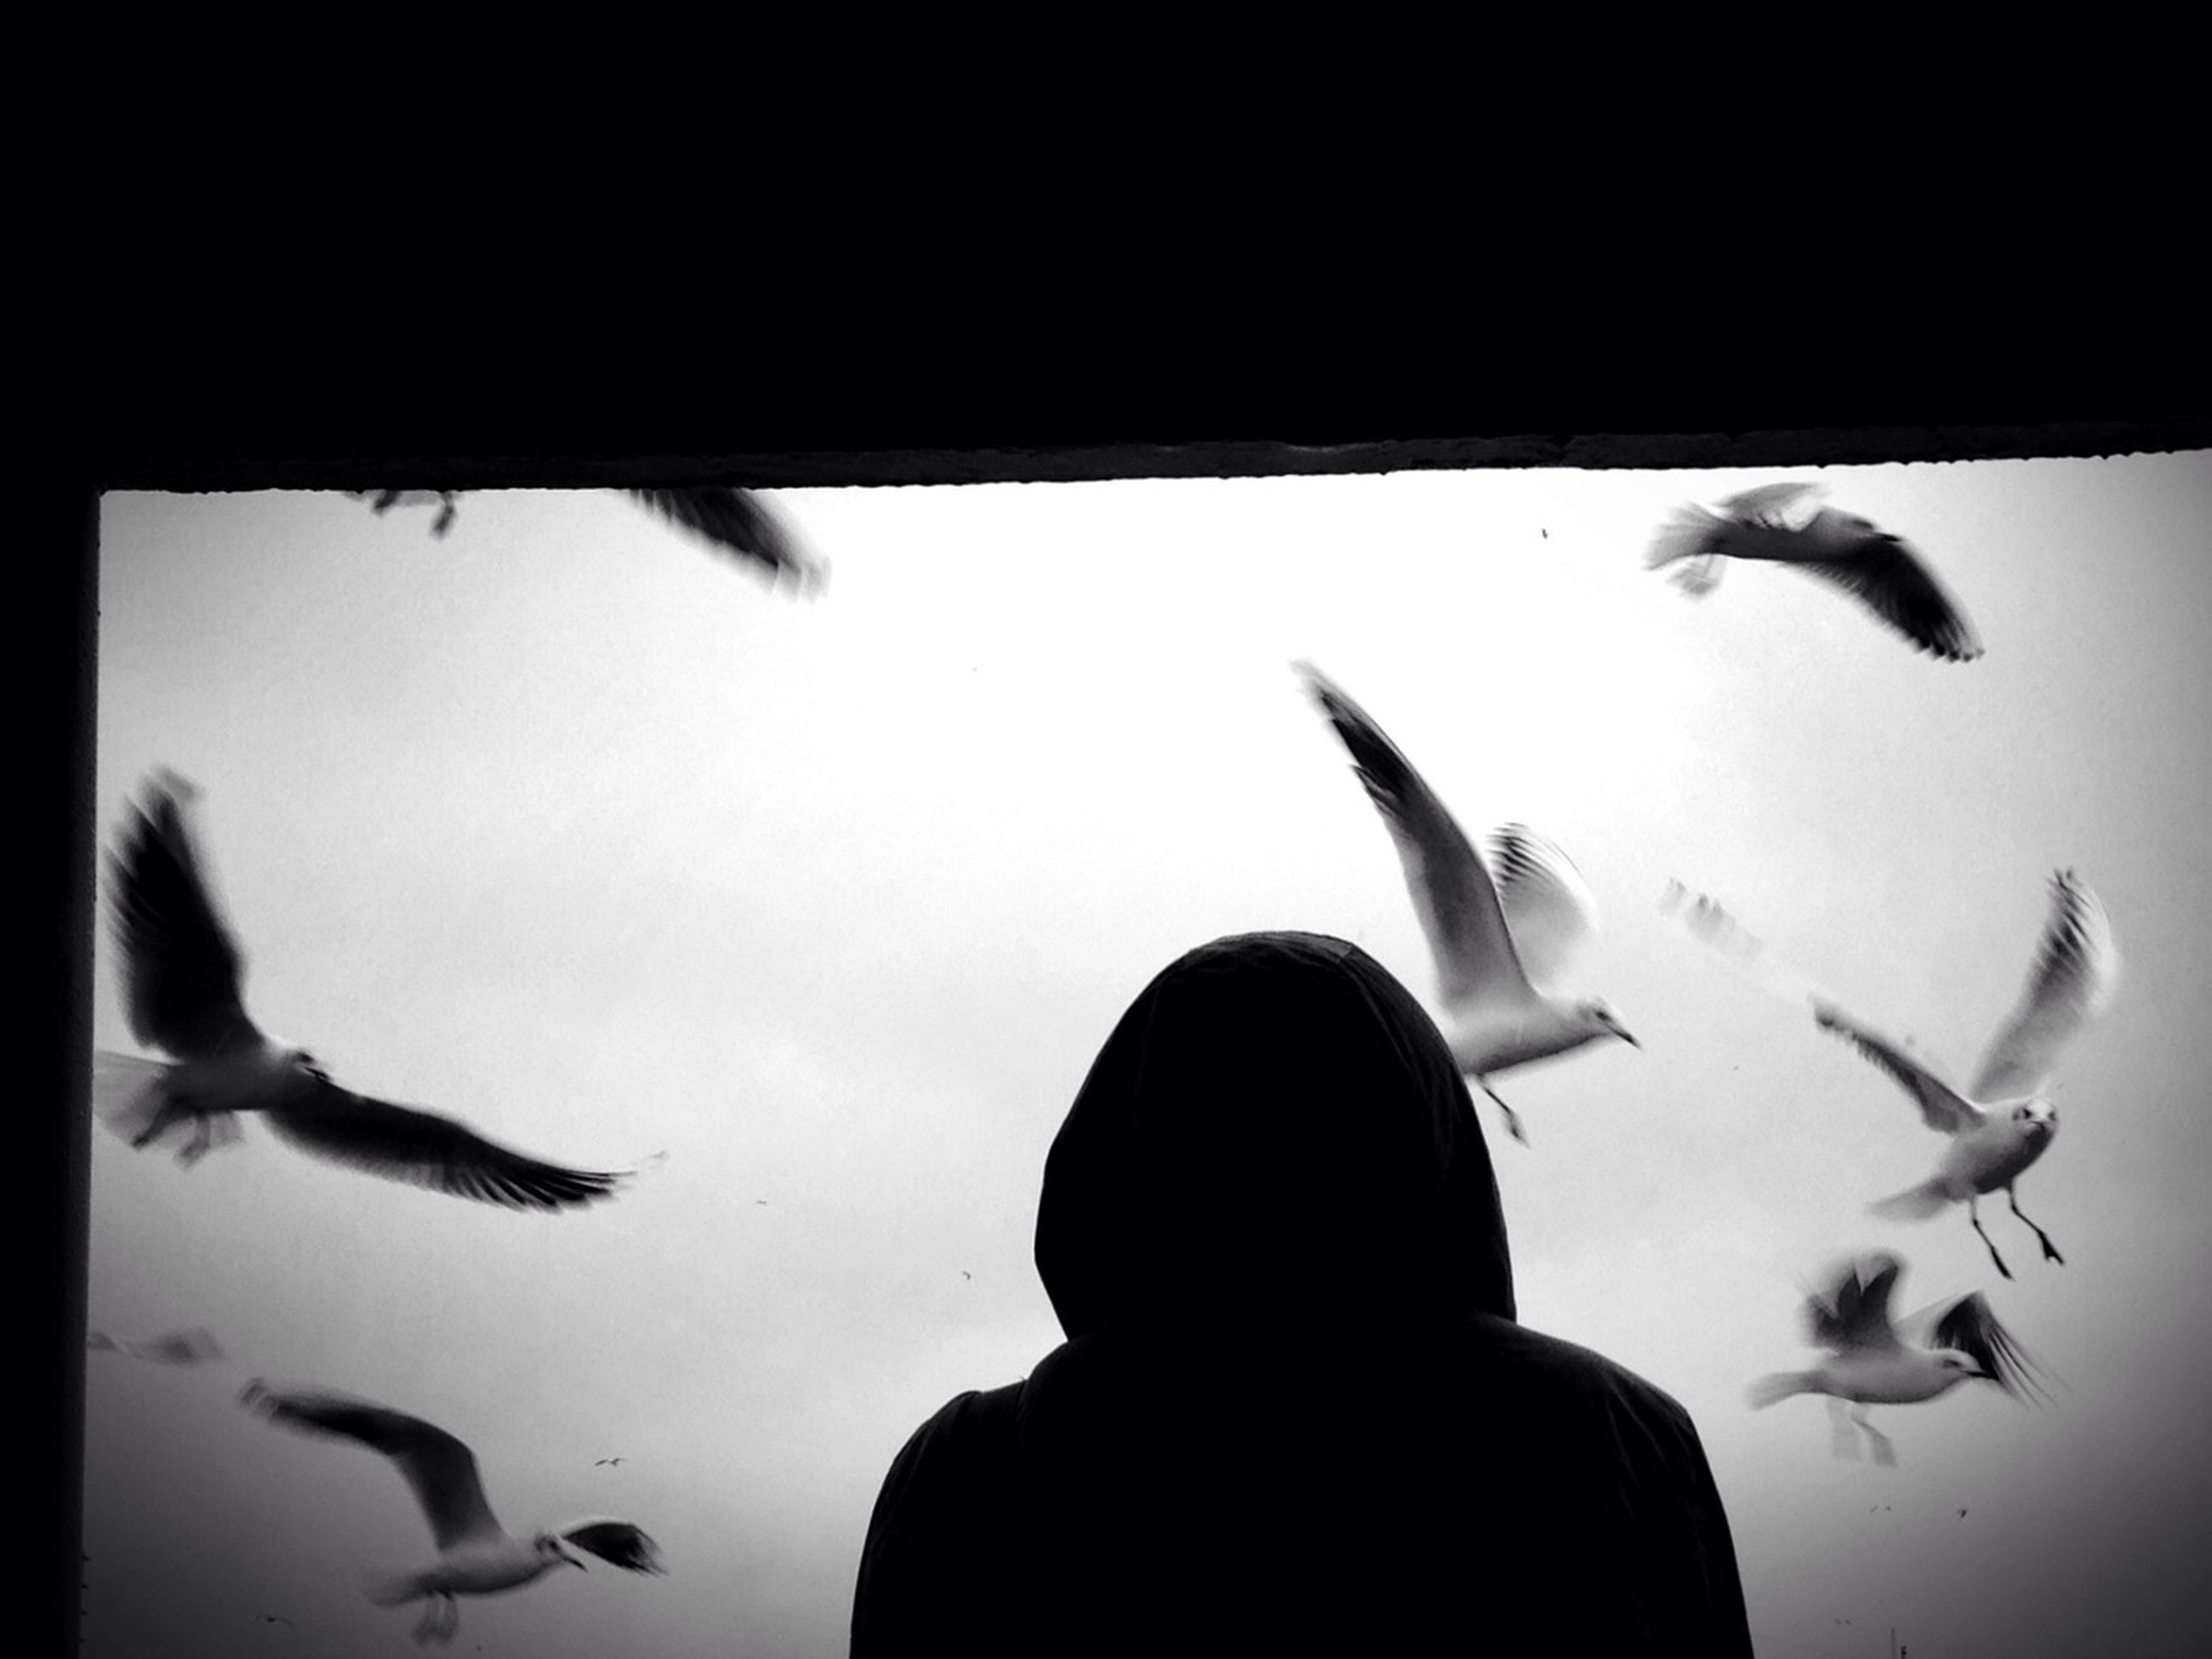 wildlife, animals in the wild, indoors, bird, animal themes, transfer print, flying, auto post production filter, silhouette, glass - material, person, transparent, lifestyles, flock of birds, fish, men, pigeon